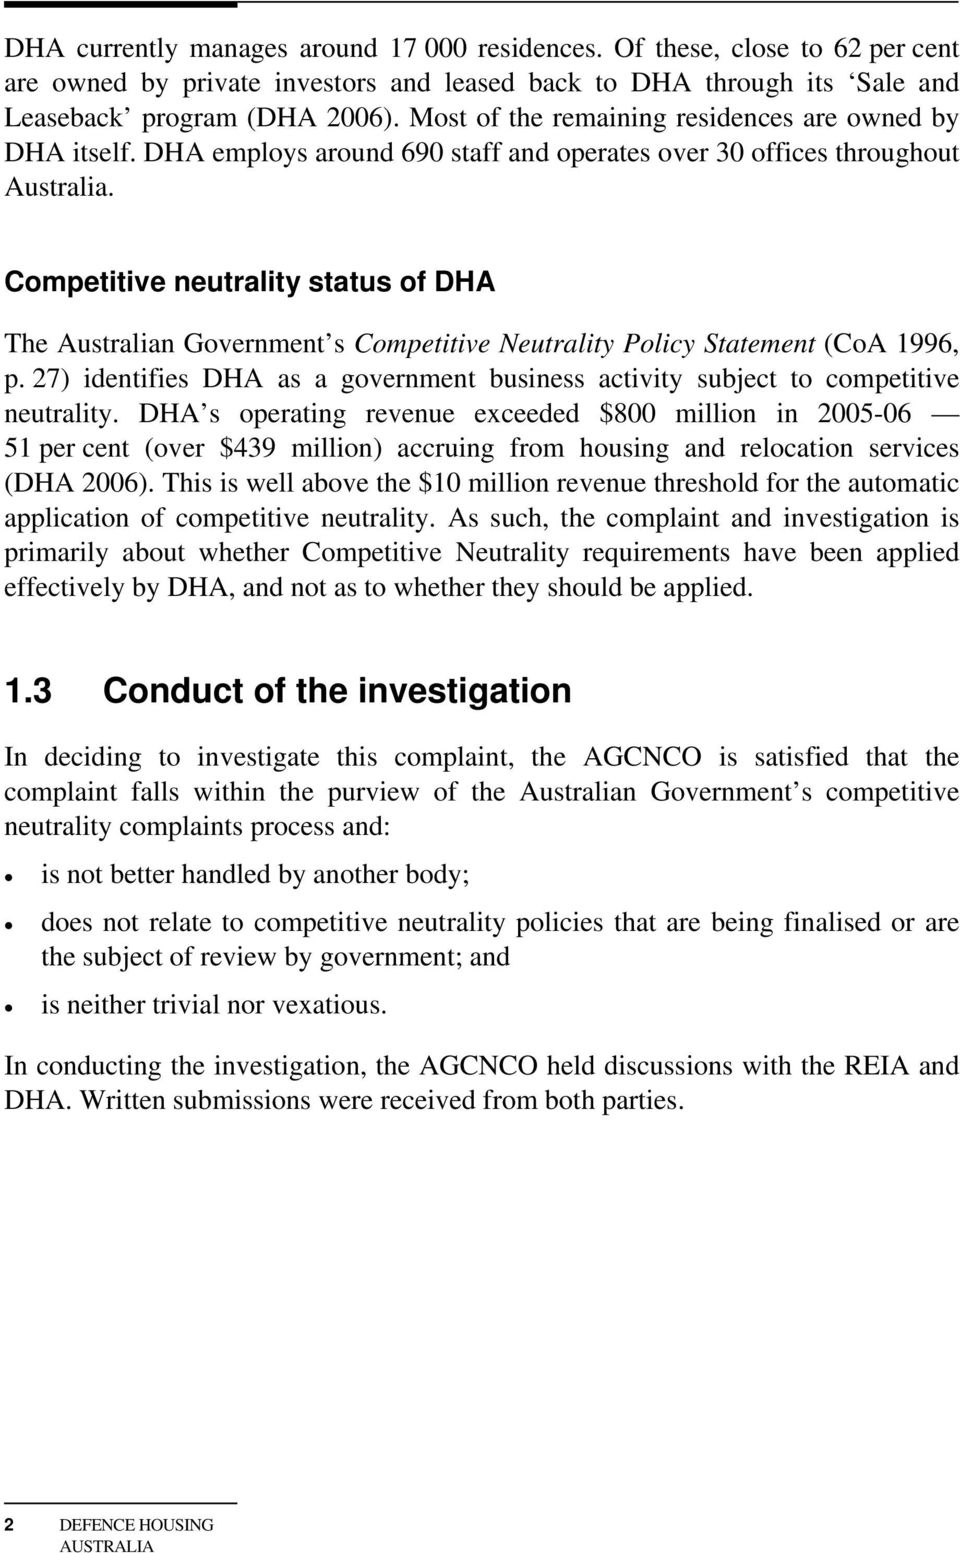 Competitive neutrality status of DHA The Australian Government s Competitive Neutrality Policy Statement (CoA 1996, p.